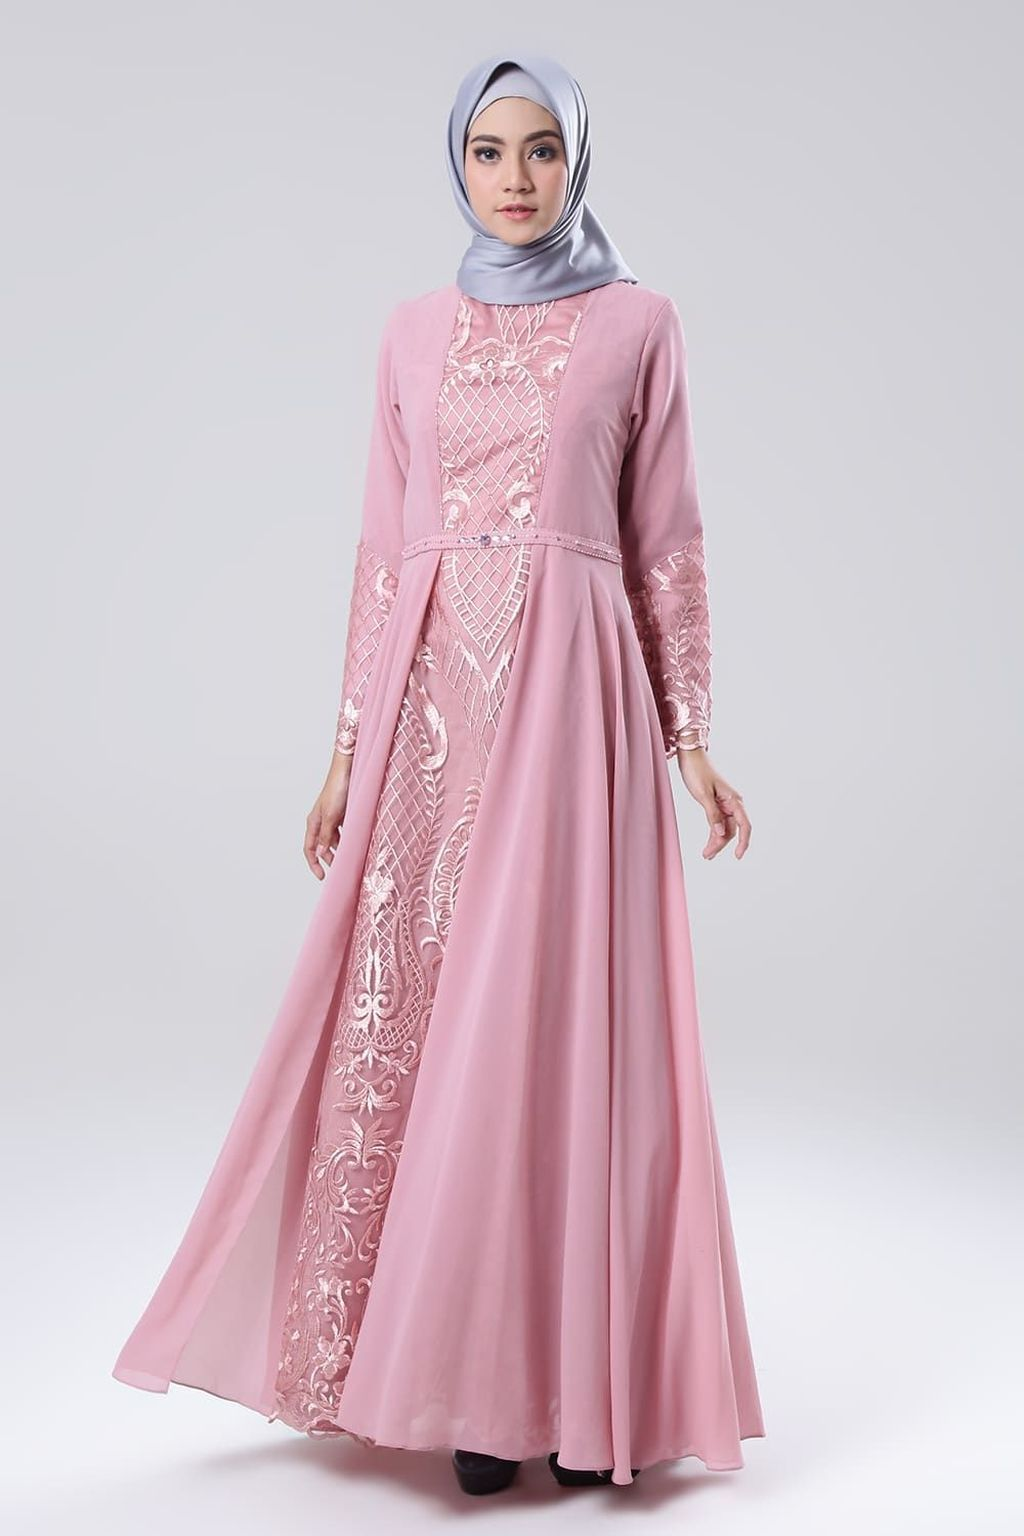 30 Party Gamis Models For Fat Women In